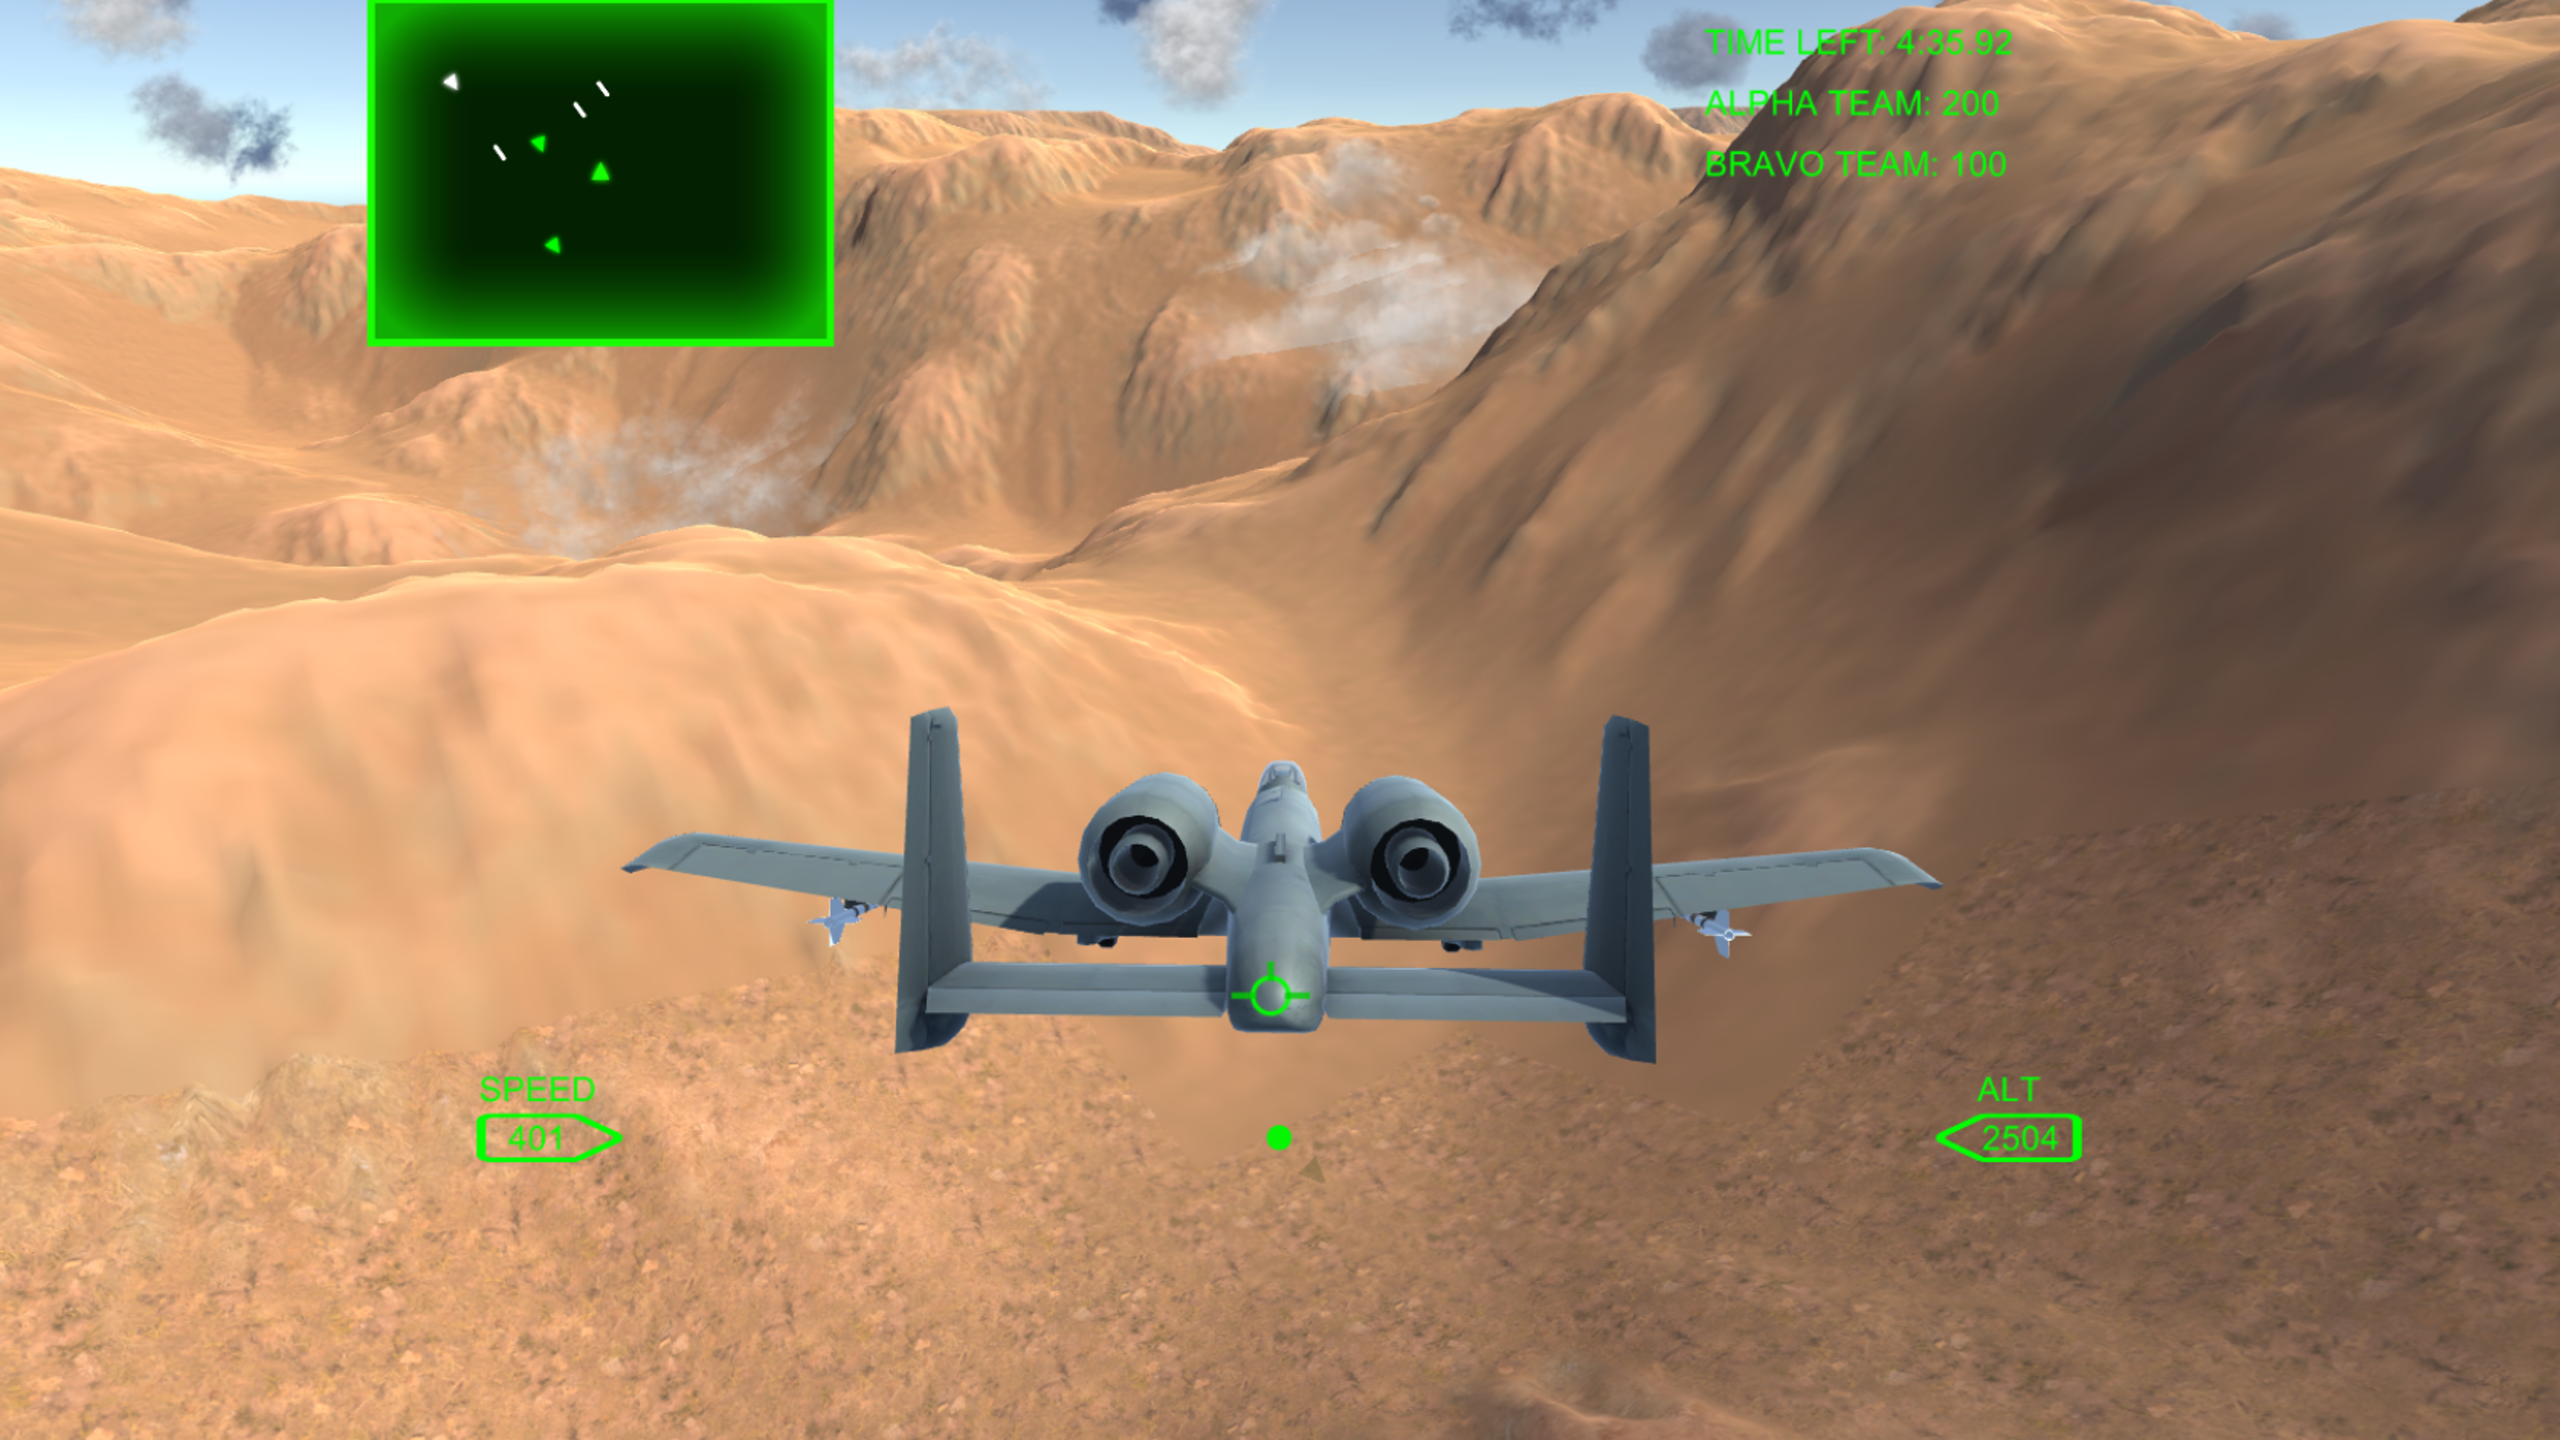 All Oculus Go games ported to the Quest - Air Brigade by